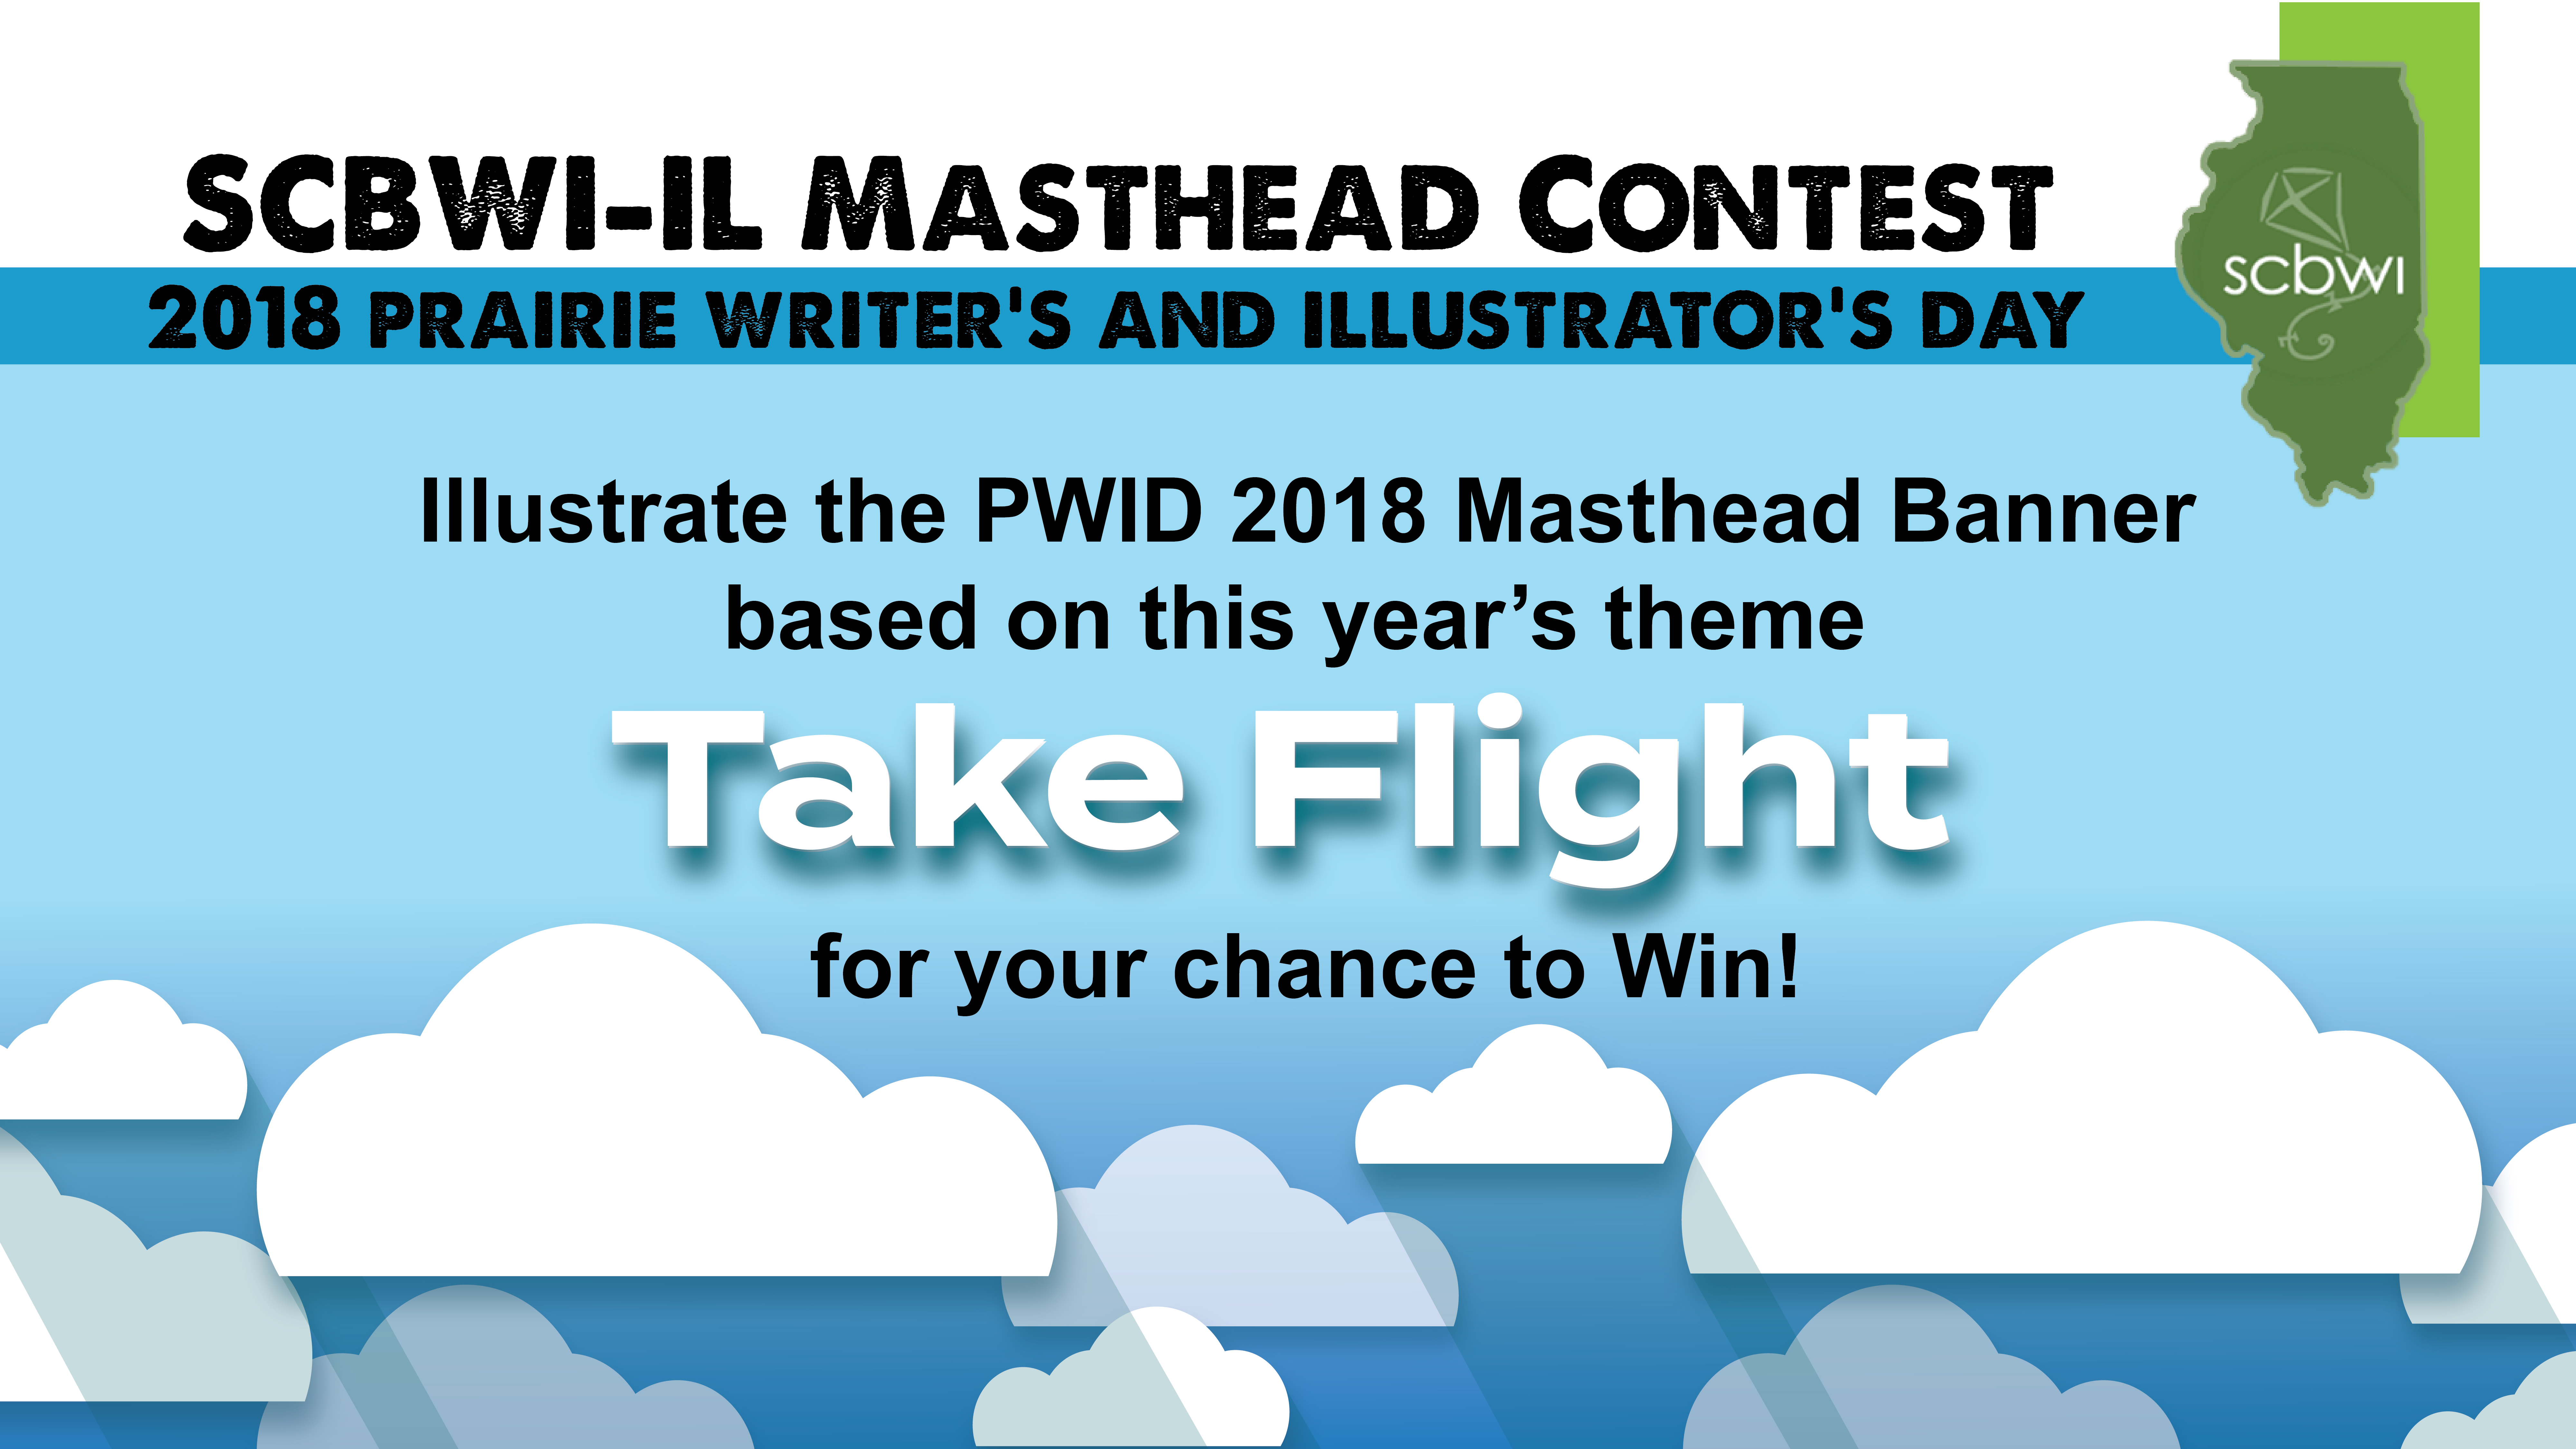 We are excited to announce that in preparation for this year's Prairie Writers and Illustrators Day - we are holding an SCBWI-IL member only illustration contest for for the masthead image that will be used in all marketing and promotion of the upcoming event.https://illinois.scbwi.org/pwid-2018-take-flight-masthead-vote/